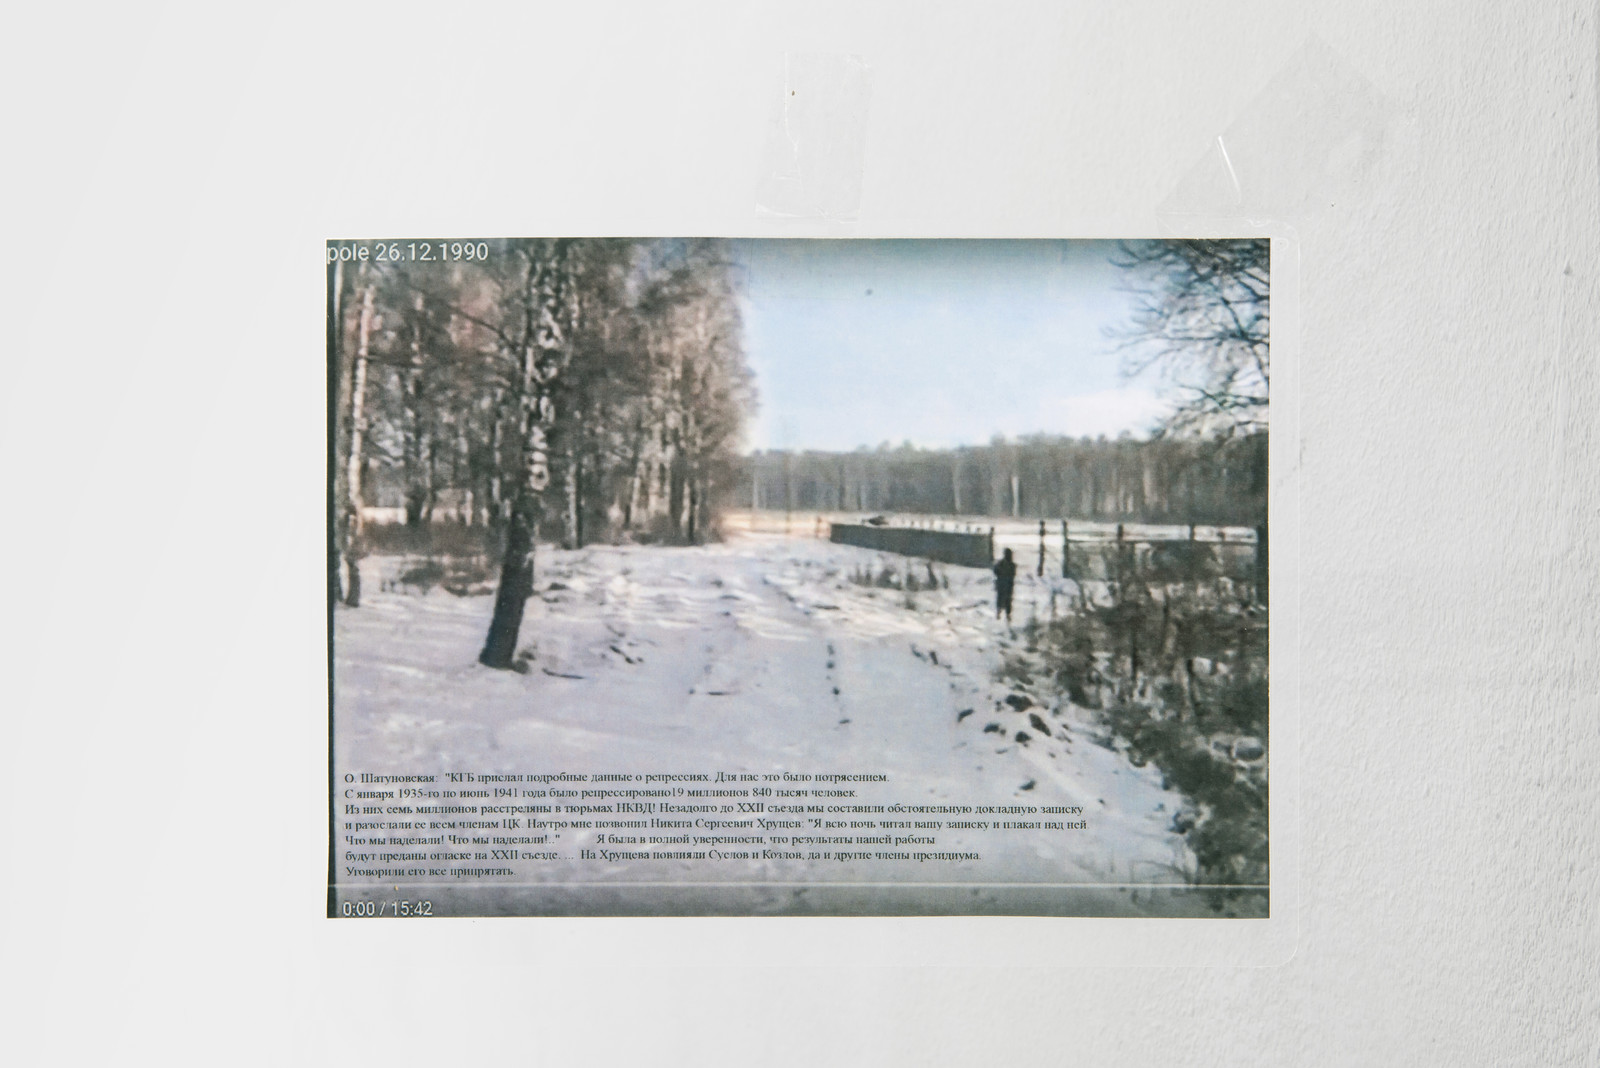 Collective Actions Group, Golden lines in Izmailovo, 2020, laminated evidence 1/20, 188 x 145 mm, courtesy of Plamen gallery, Moscow